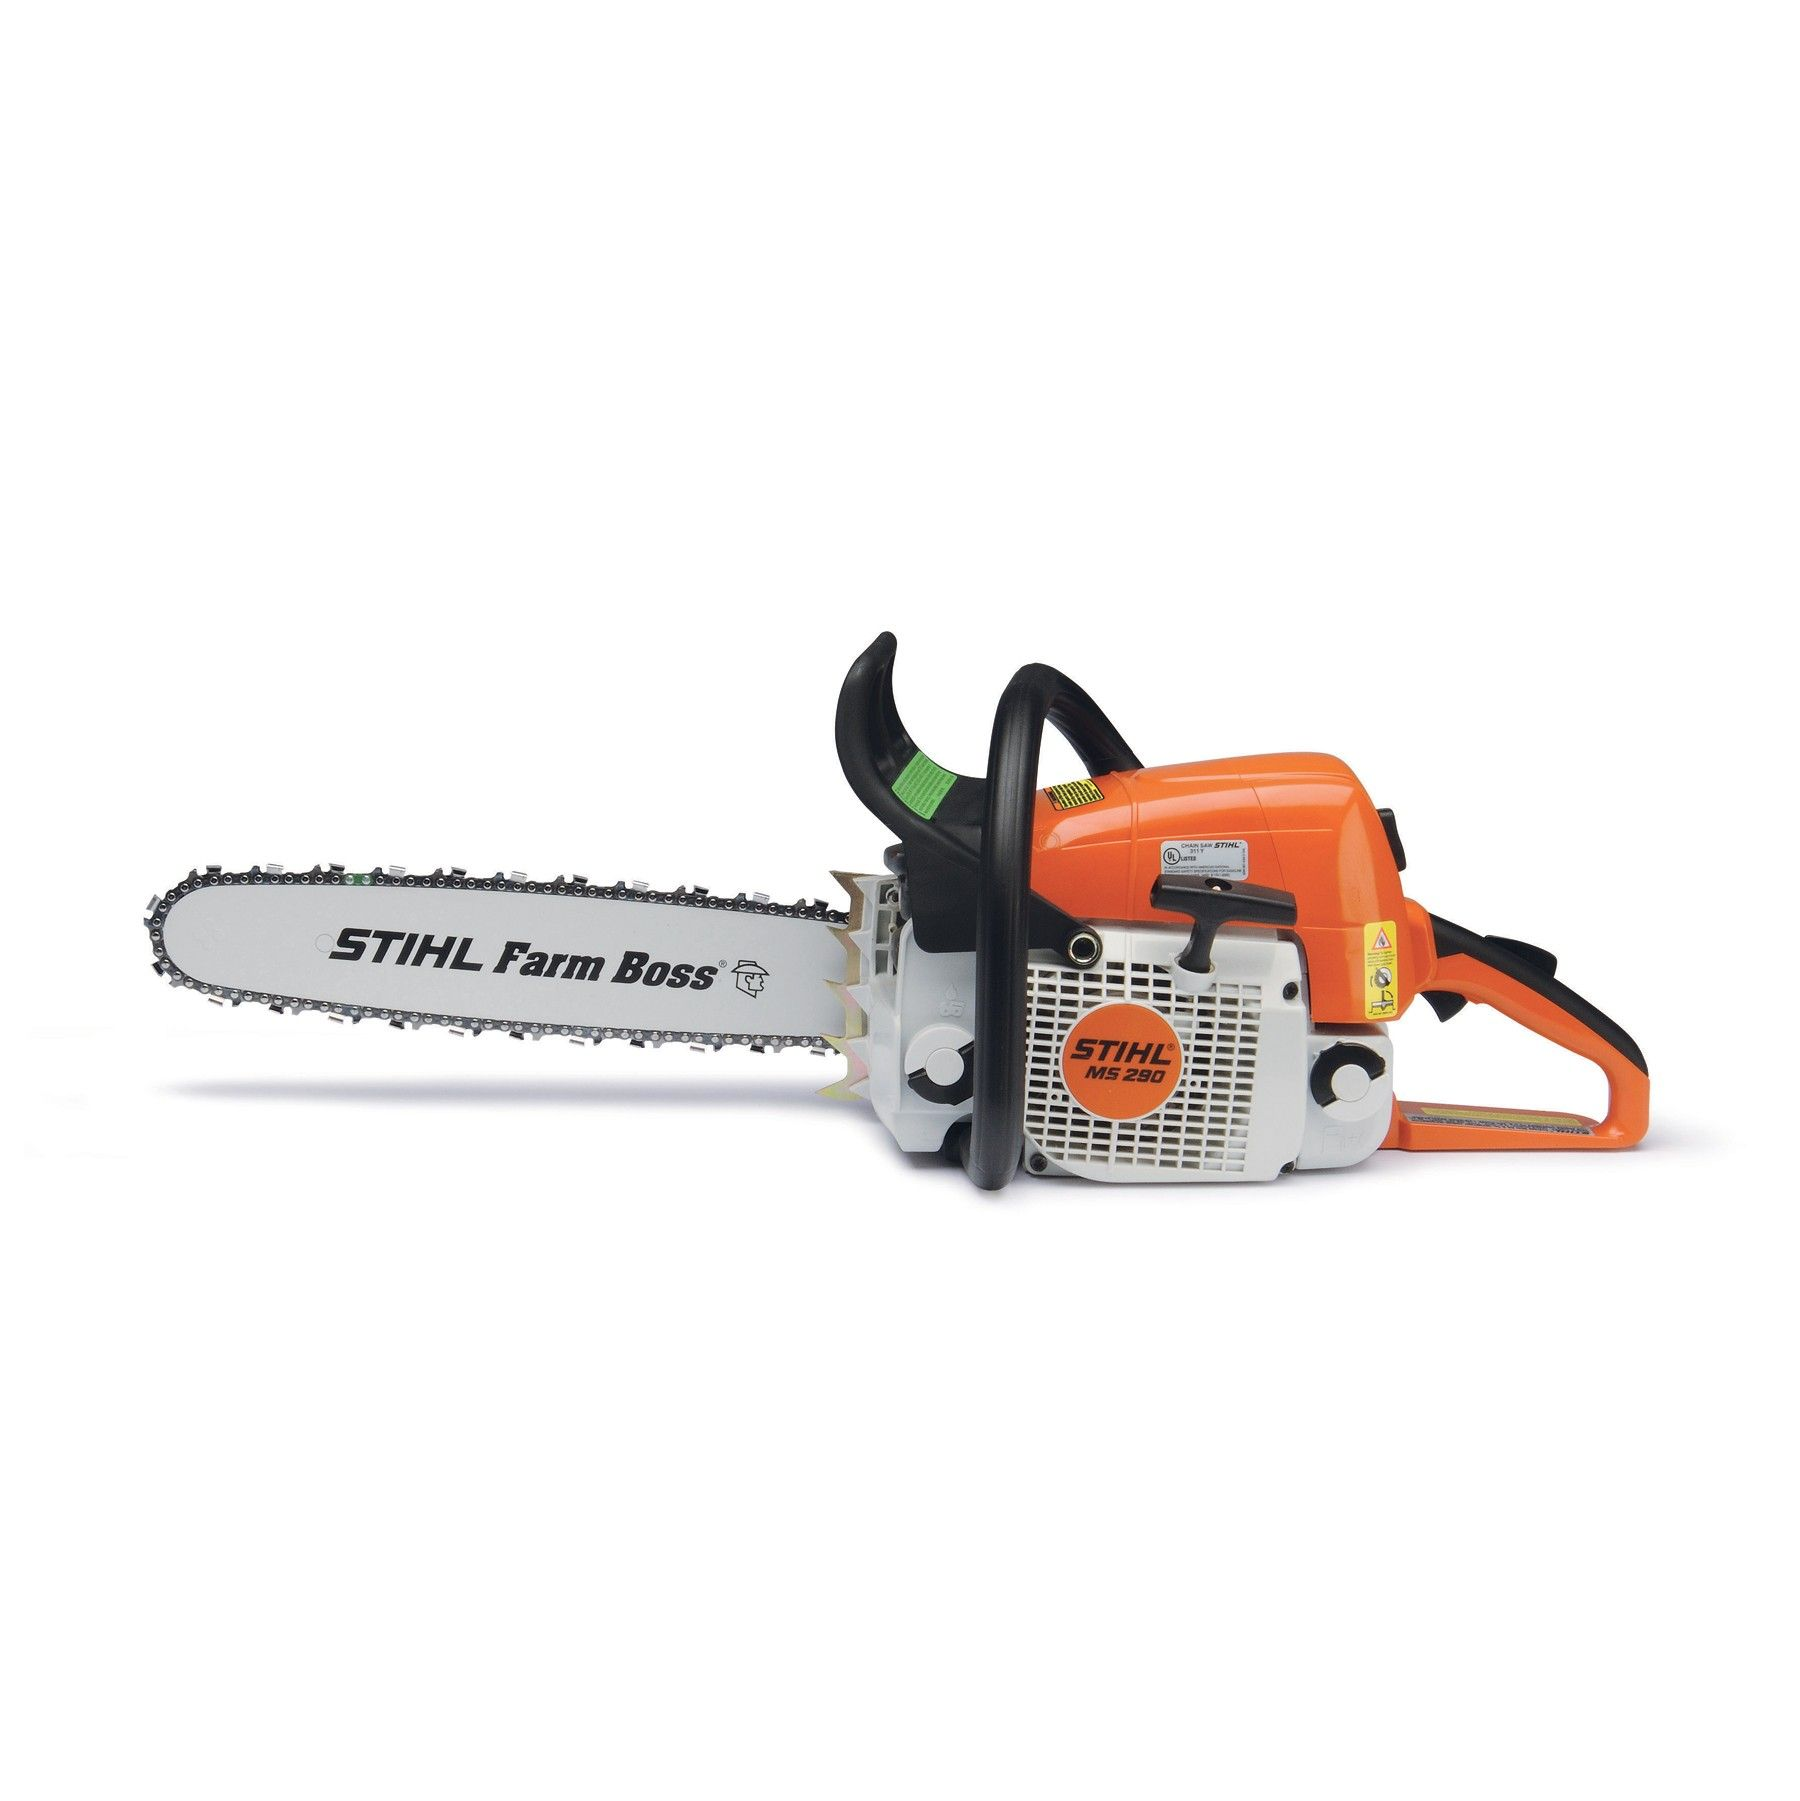 Stihl ms 270 farm boss chain saw landscape maintenance chainsaw greentooth Gallery